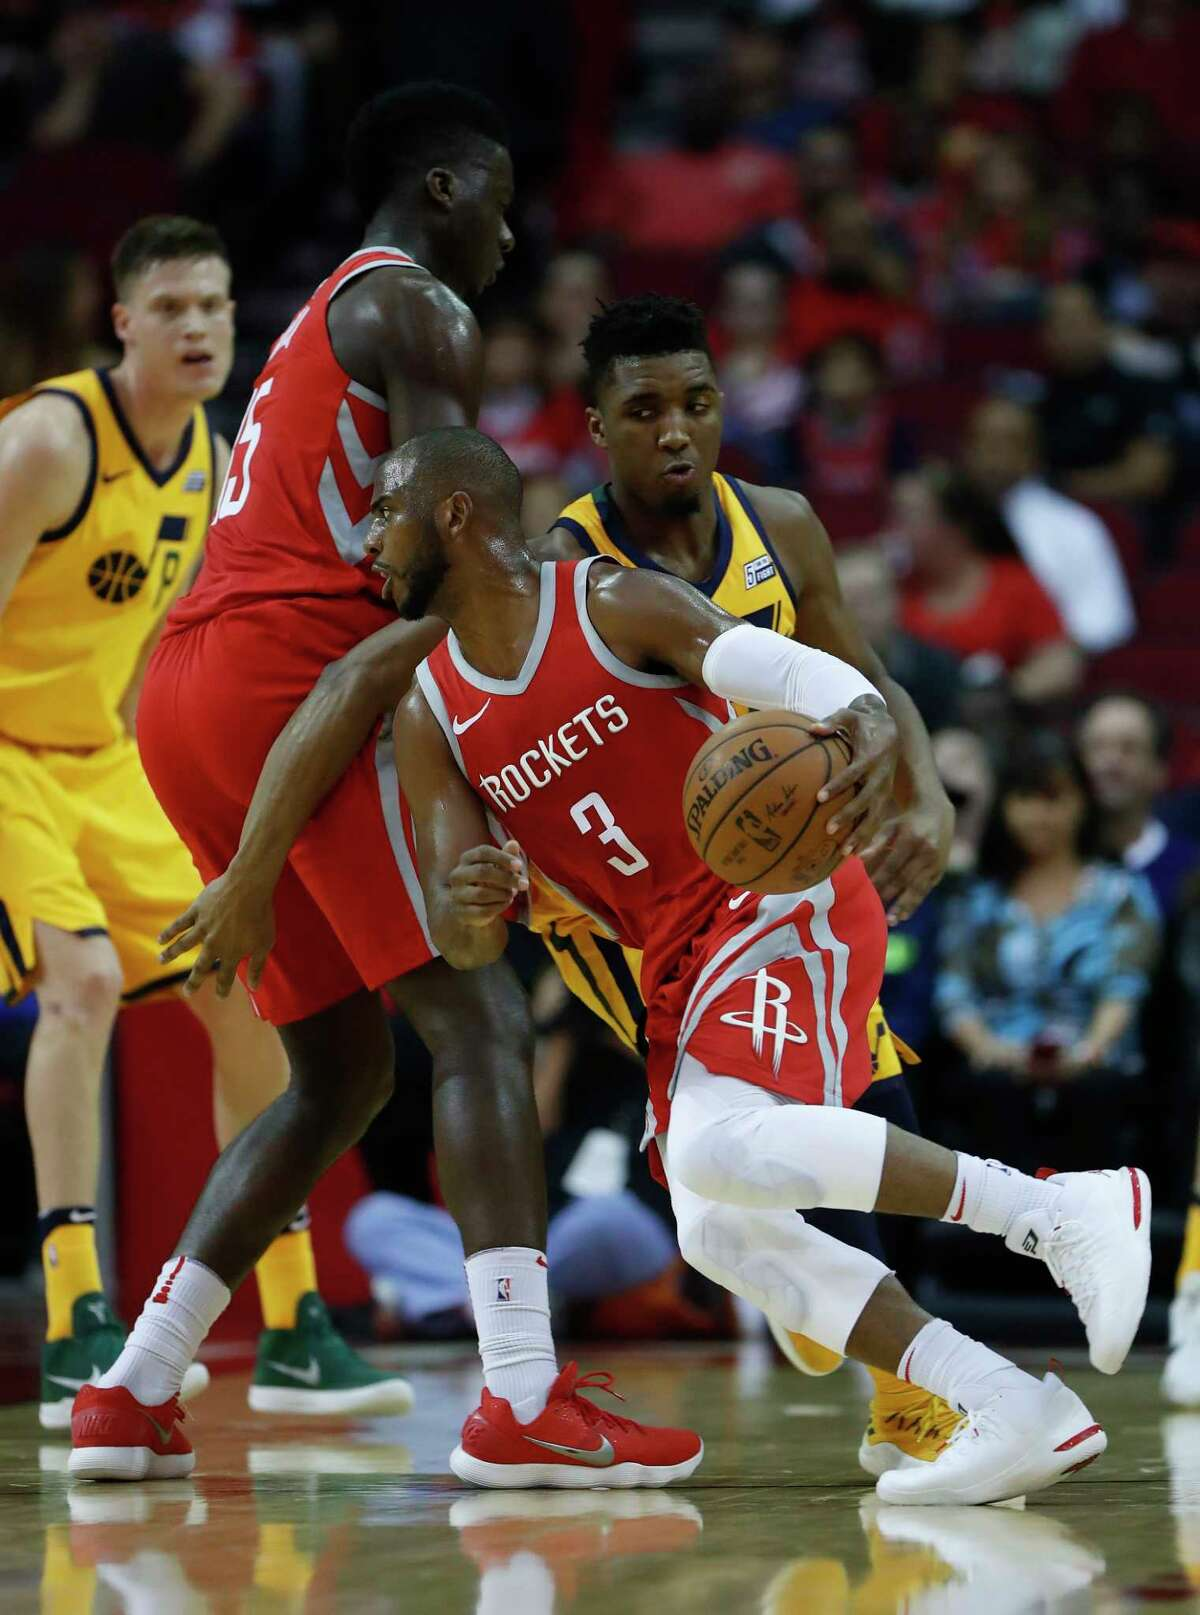 Houston Rockets guard Chris Paul (3) during the first half of an NBA basketball game at Toyota Center, Monday, Dec. 18, 2017, in Houston.